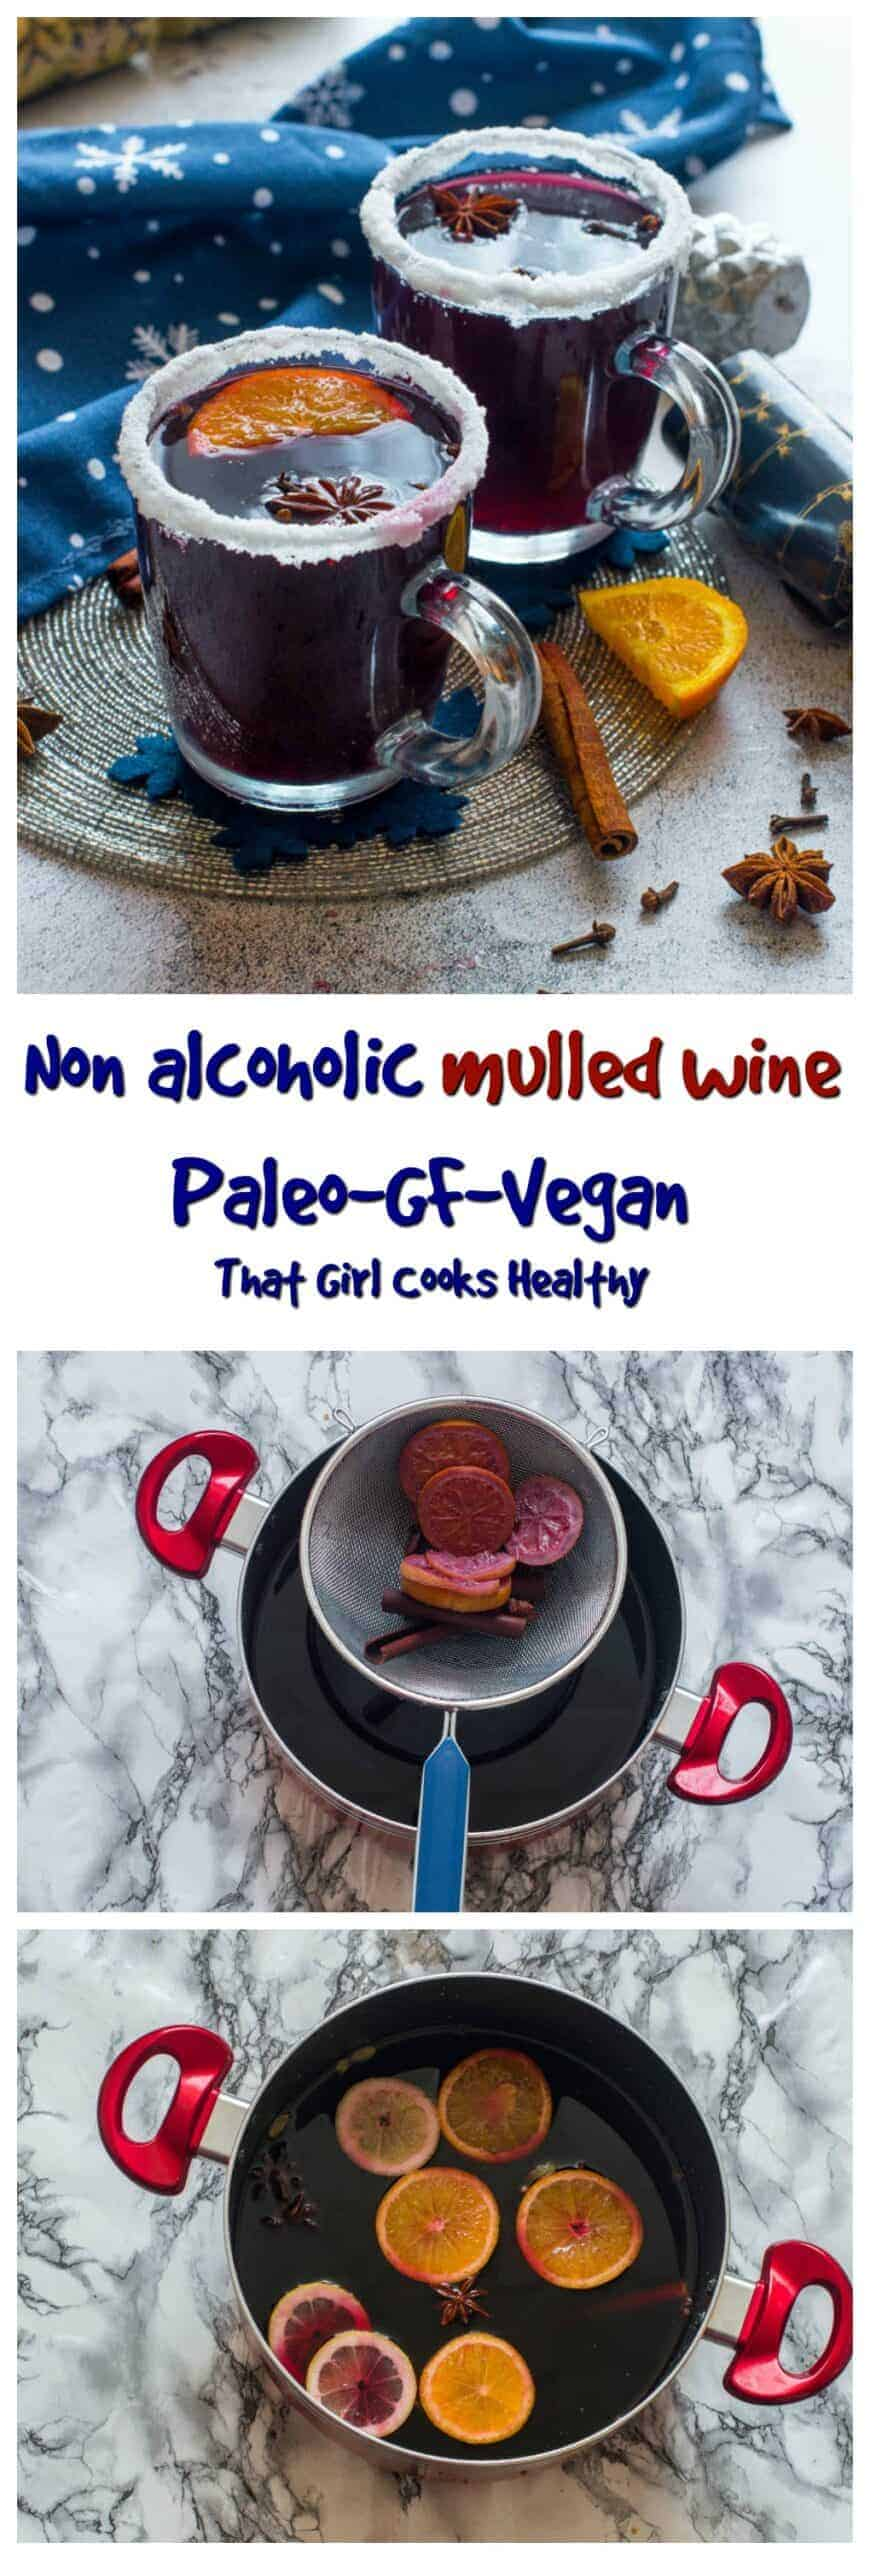 Embrace the festive season with this tasty non alcoholic mulled wine